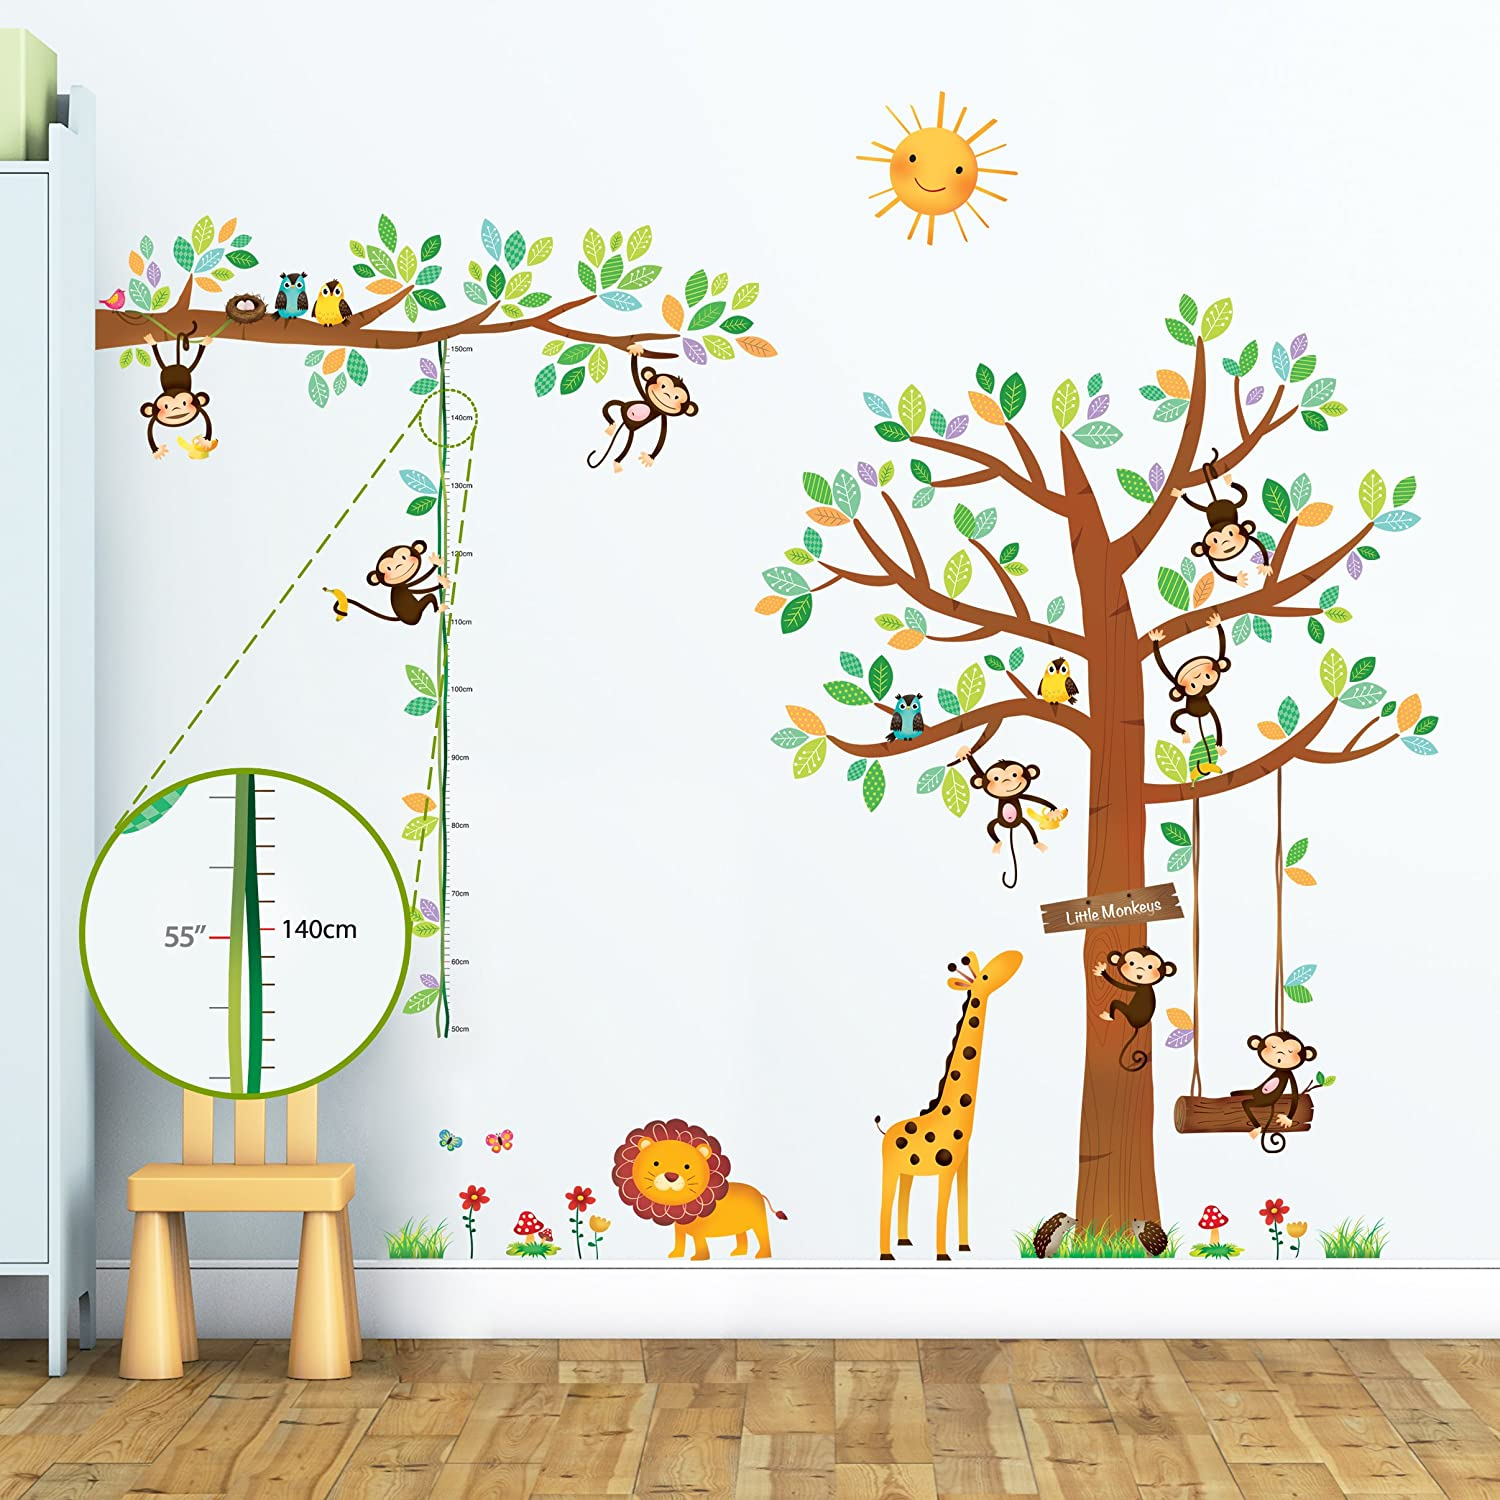 DECOWALL DA-1401P1402 8 Little Monkeys Tree and Height Chart Kids Wall Stickers Wall Decals Peel and Stick Removable Wall Stickers for Kids Nursery Bedroom Living Room décor